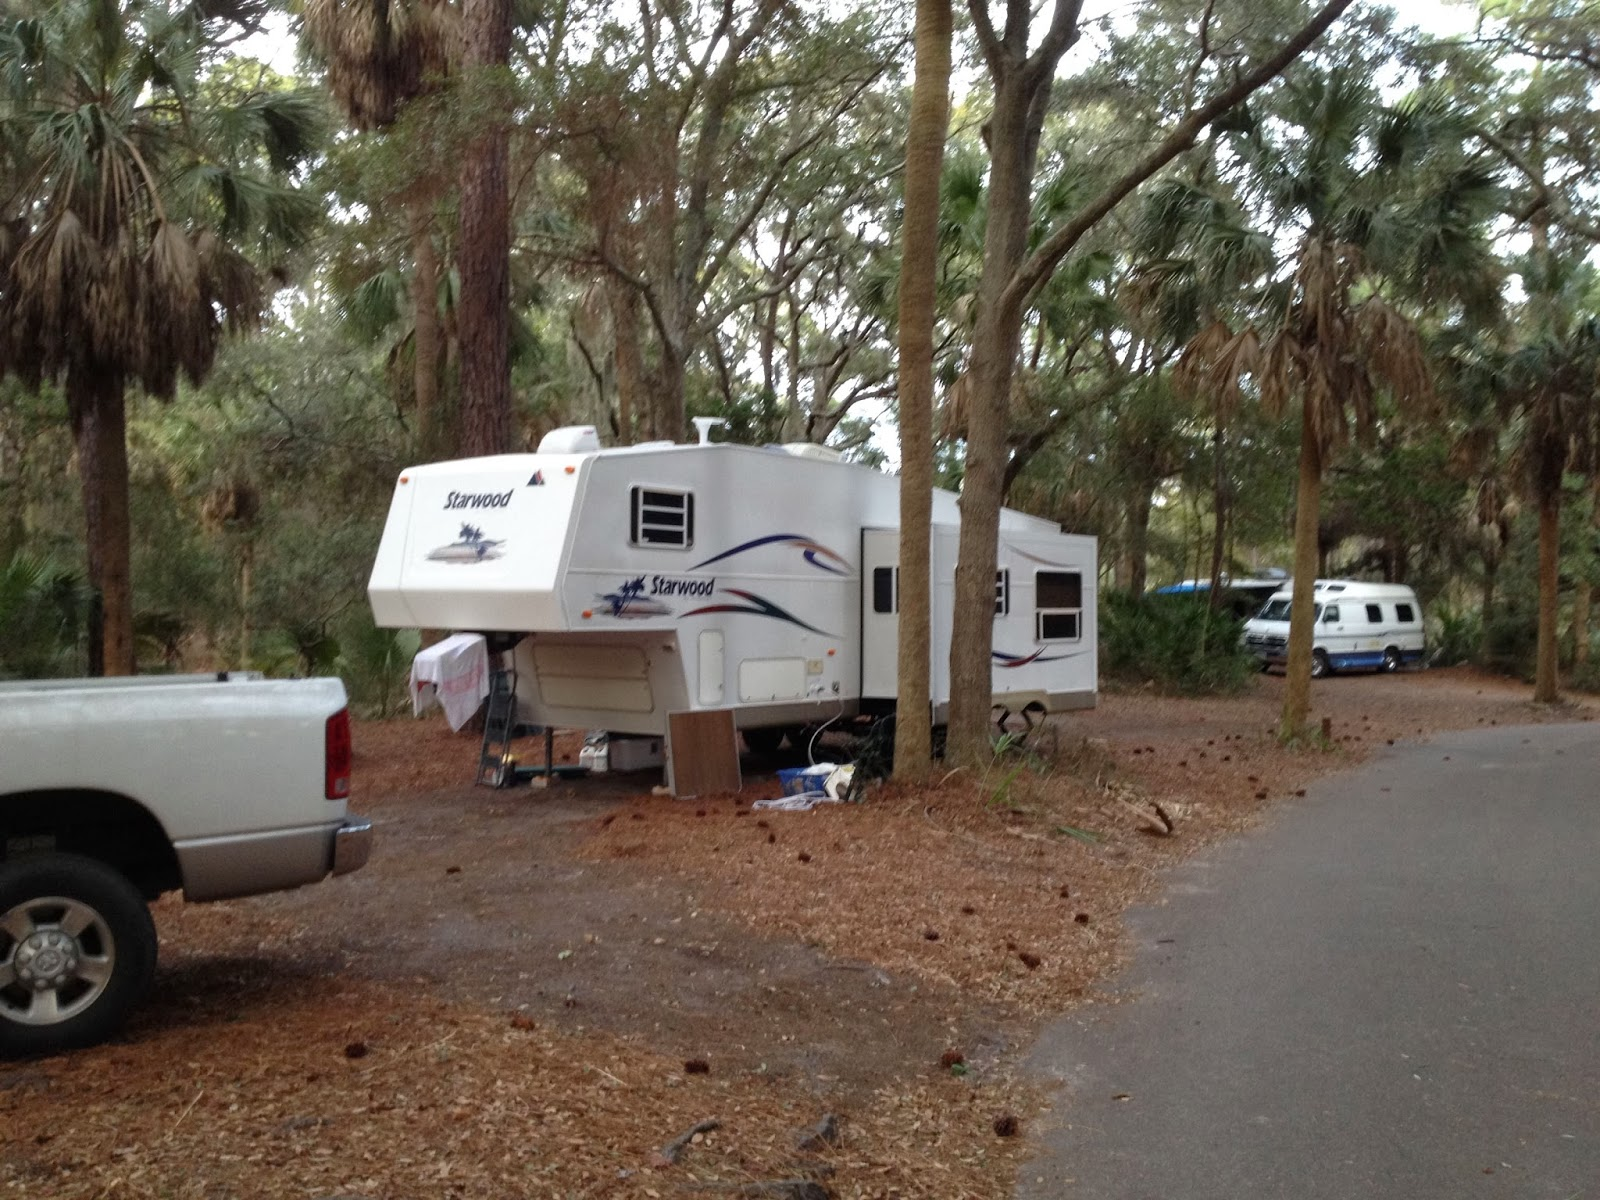 Hunting Island Is A Beautiful State Park In South Carolina. The Campground  Is Wooded And Fairly Flat. The Beach Is A Short Walk To All The Campsites.